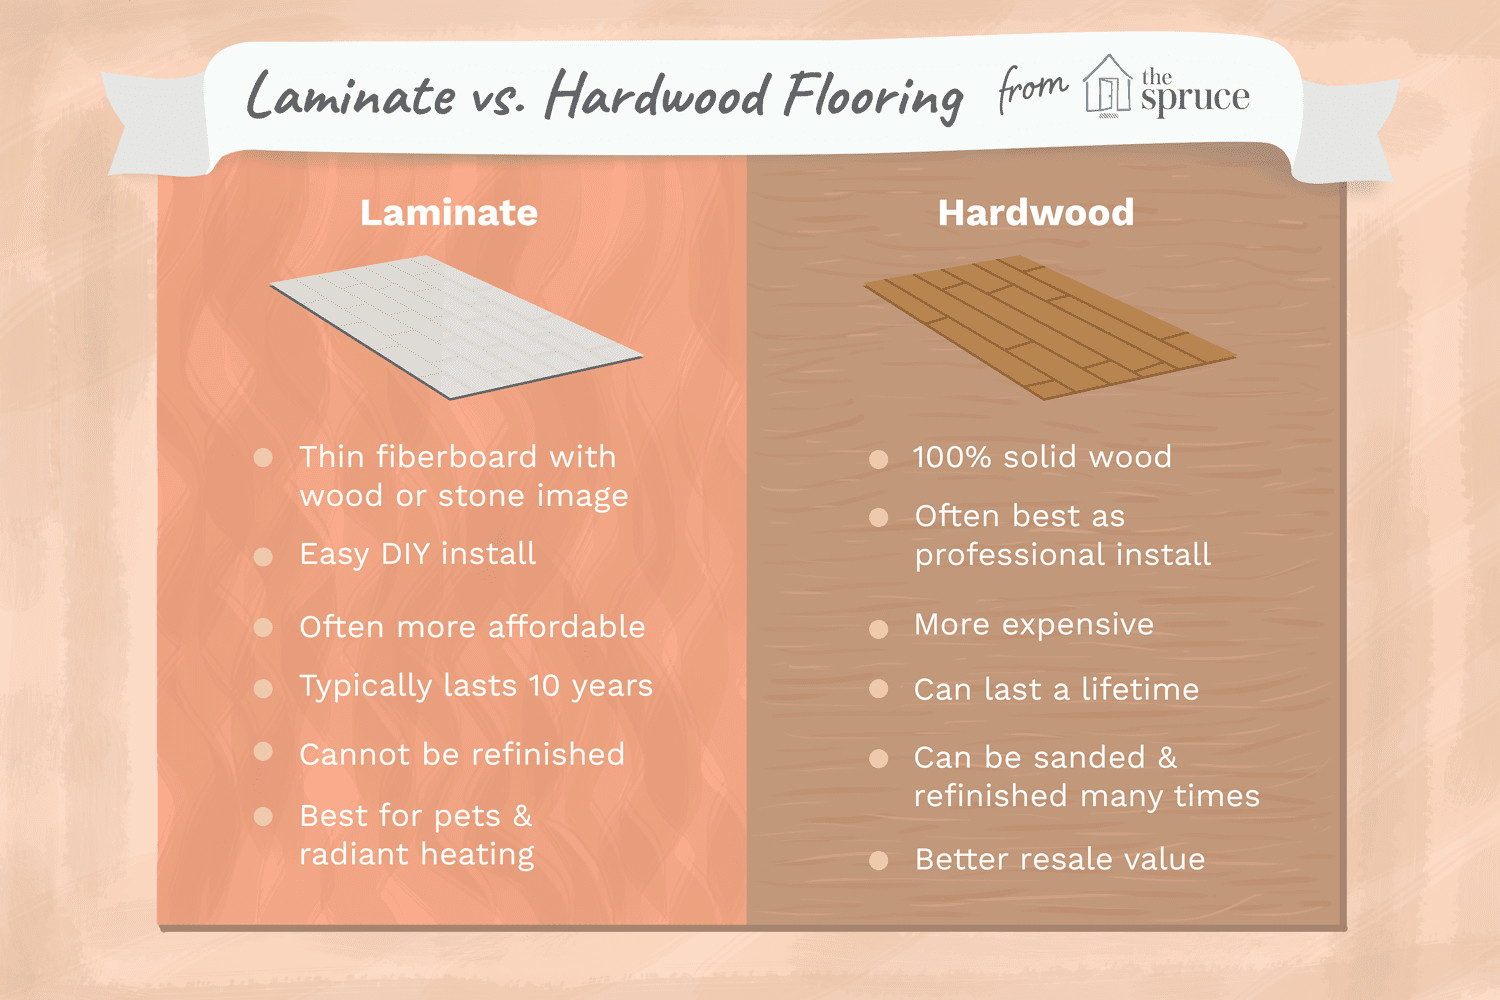 hardwood floor nailer rental of laminate vs hardwood doesnt have to be a hard decision with hardwood doesnt have to be a hard decision